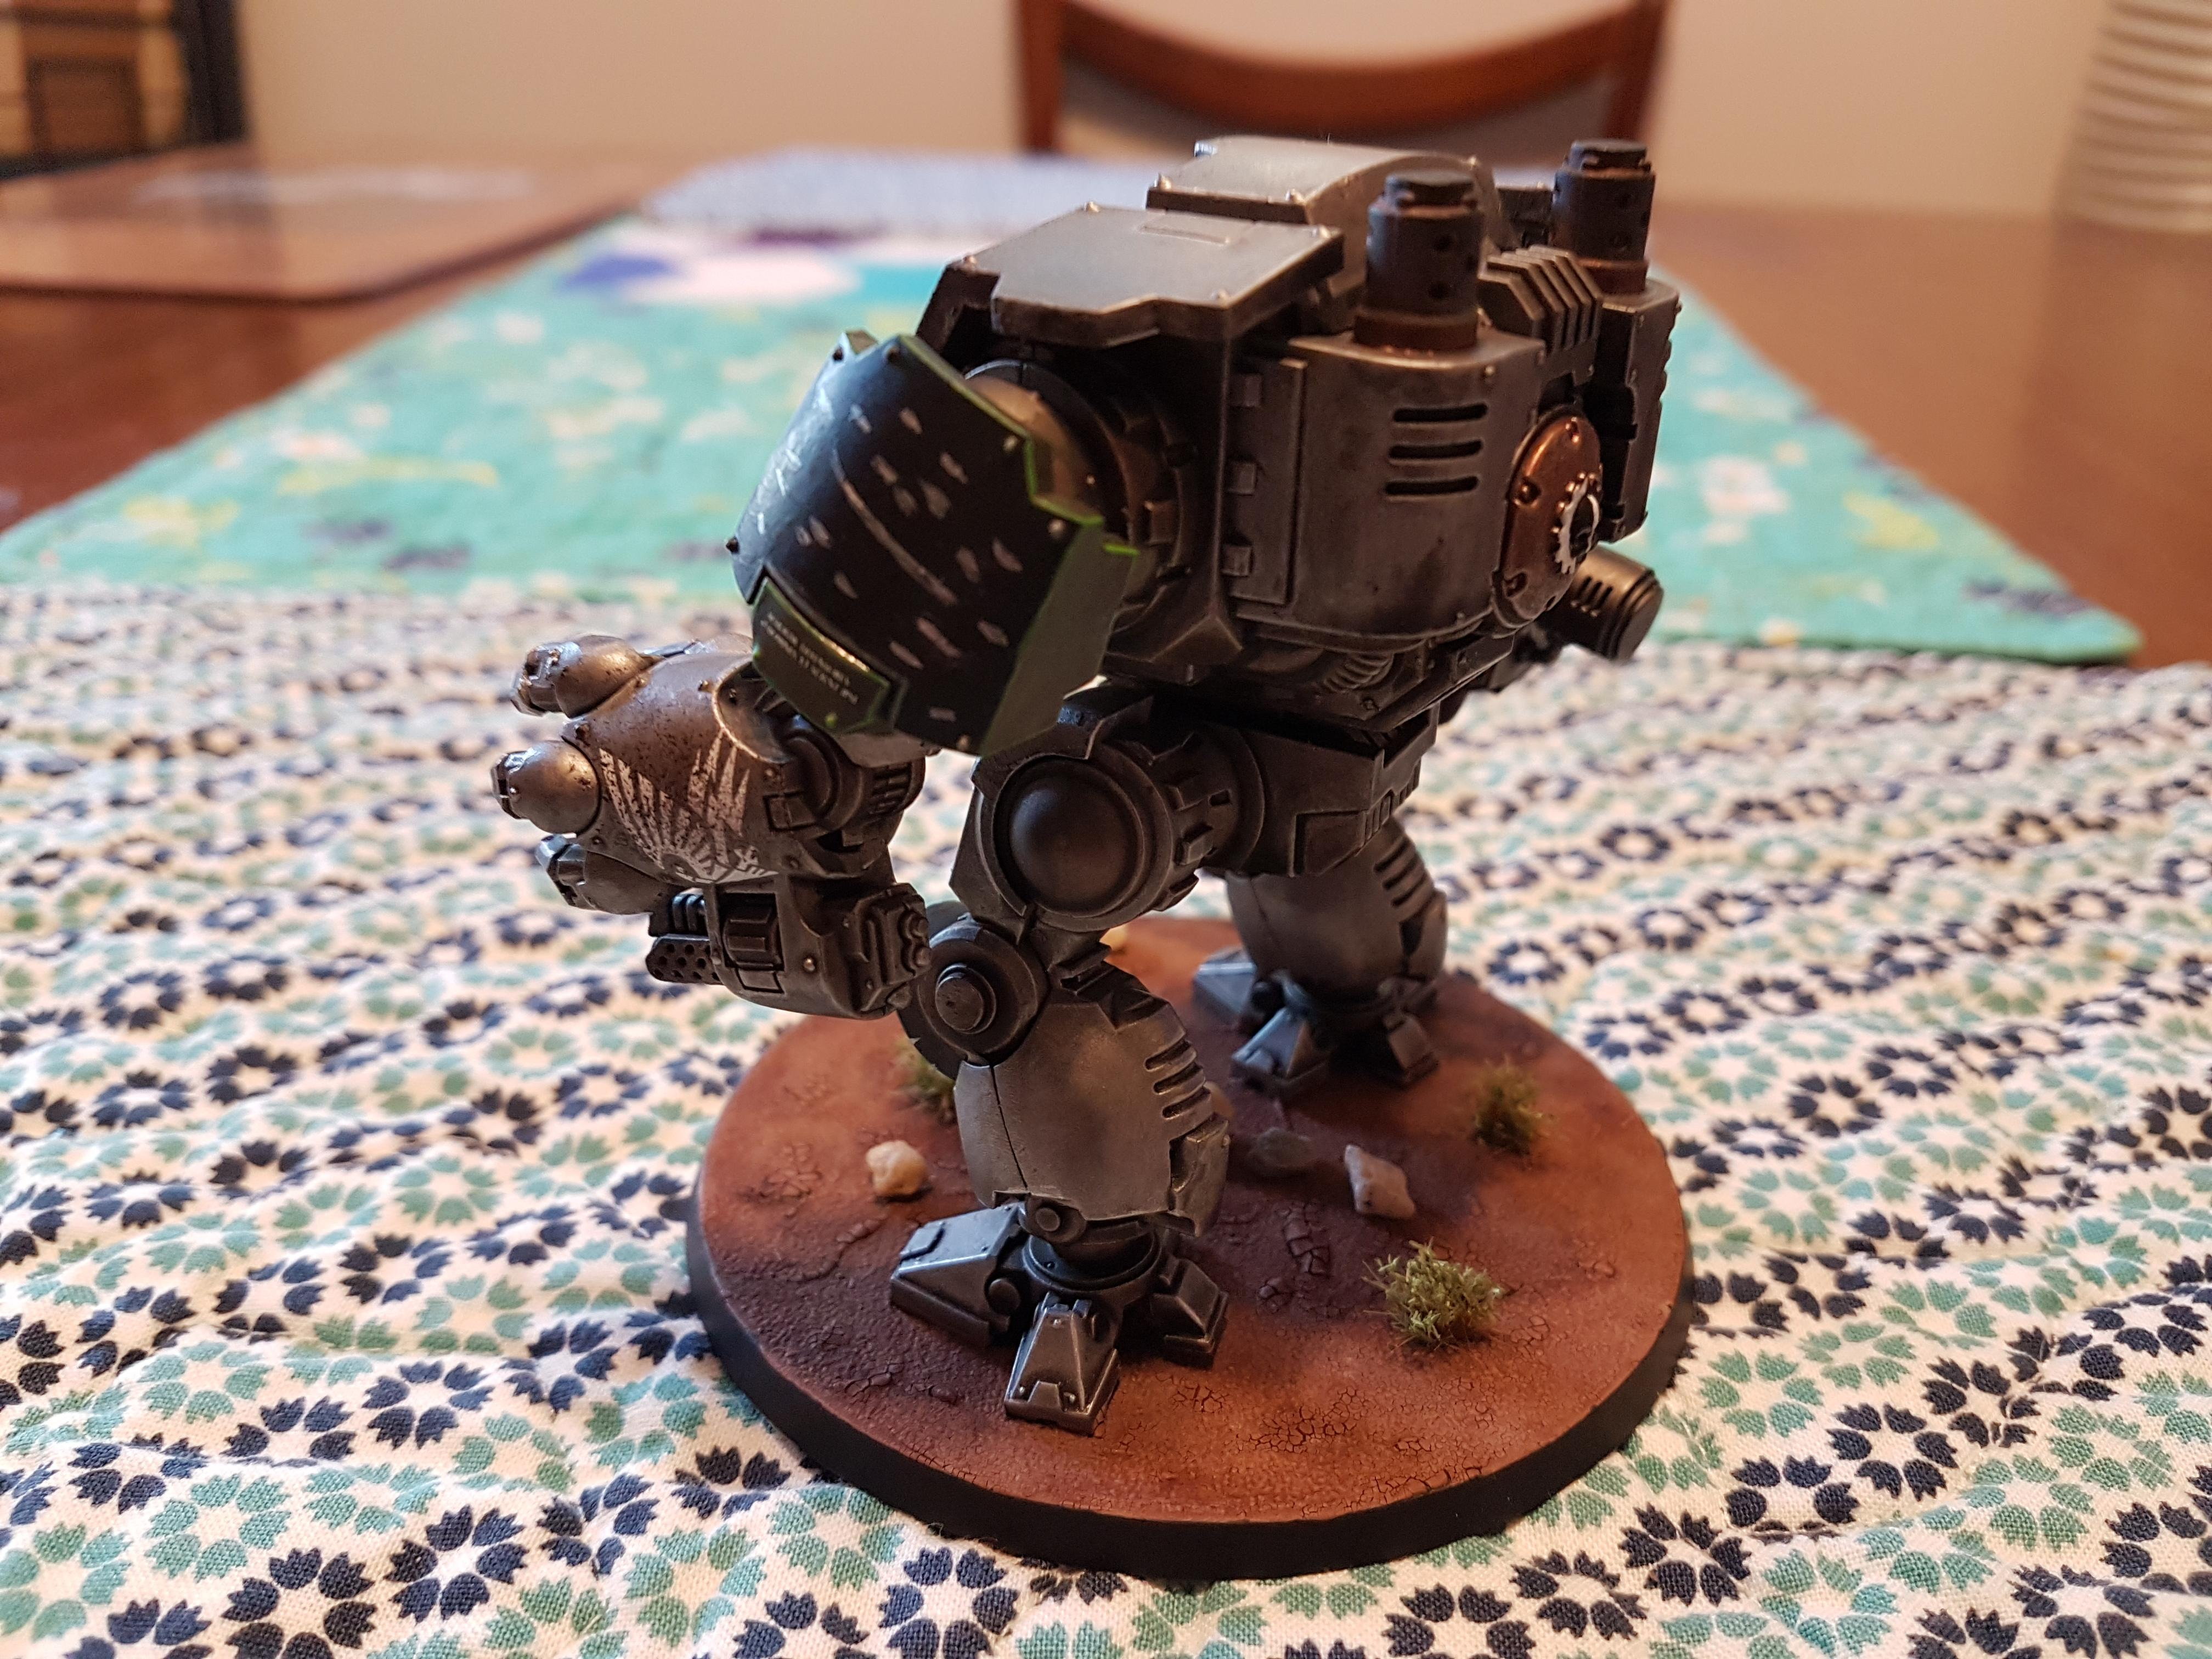 Black, Doom, Doom Legion, Dreadnought, Green, Heavy Flammer, Heavy Onslaught Catling Cannon, Iron, Legion, Metal, Primaris, Redemptor, Redemptor Dreadnought, Redmptor Fist, Silver, Space Marines